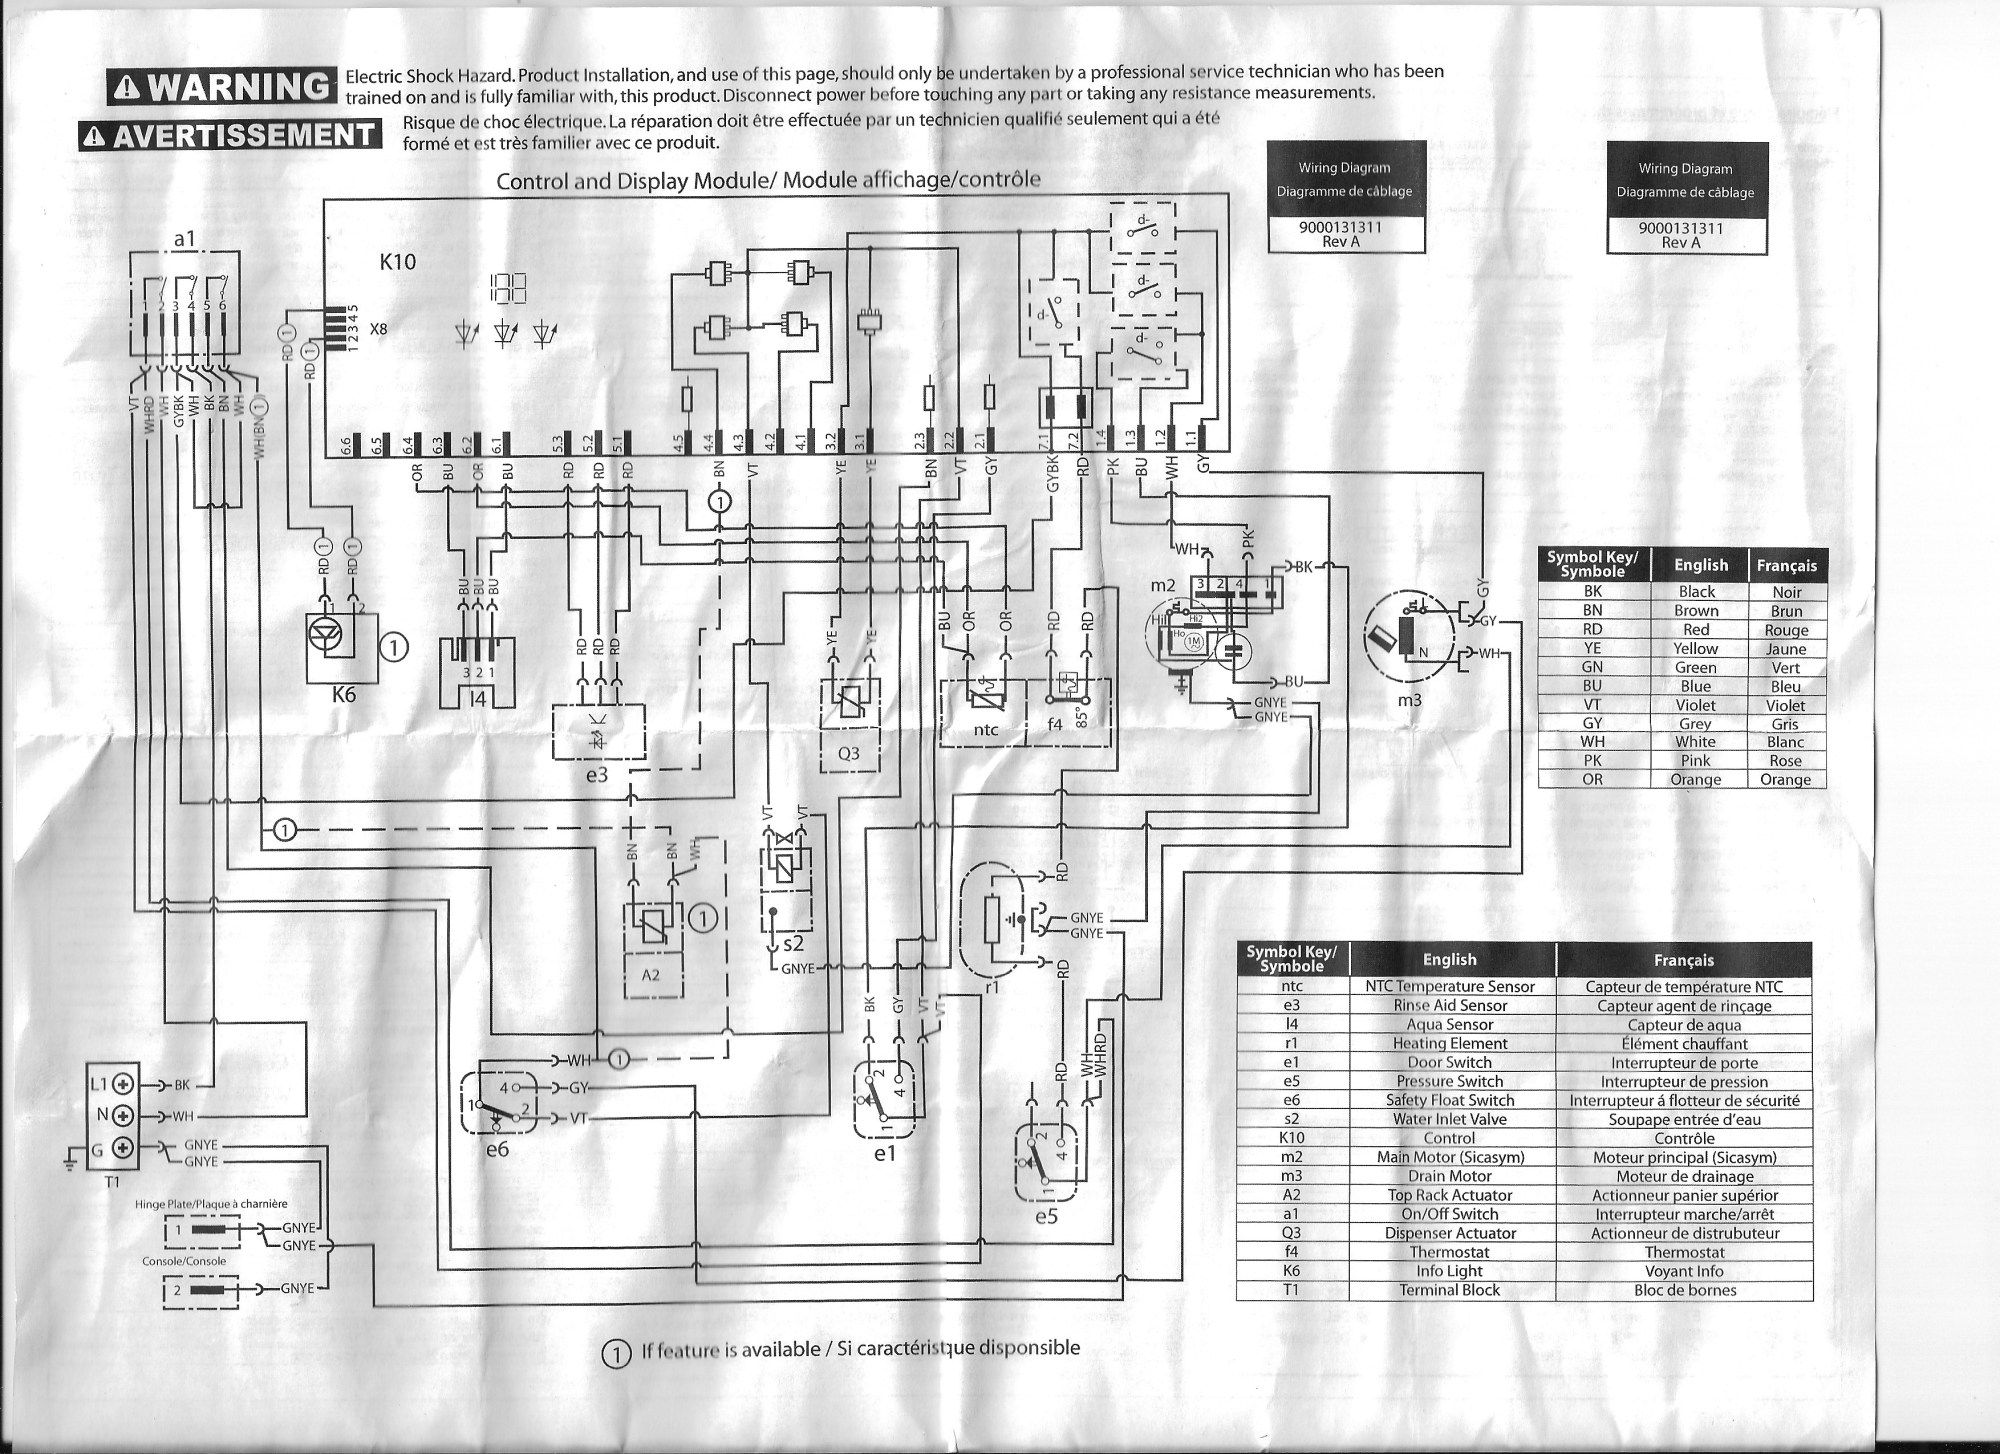 hight resolution of ge stove wiring diagram ge profile dishwasher wiring diagram images frigidaire gallery electric dryer wiring diagram